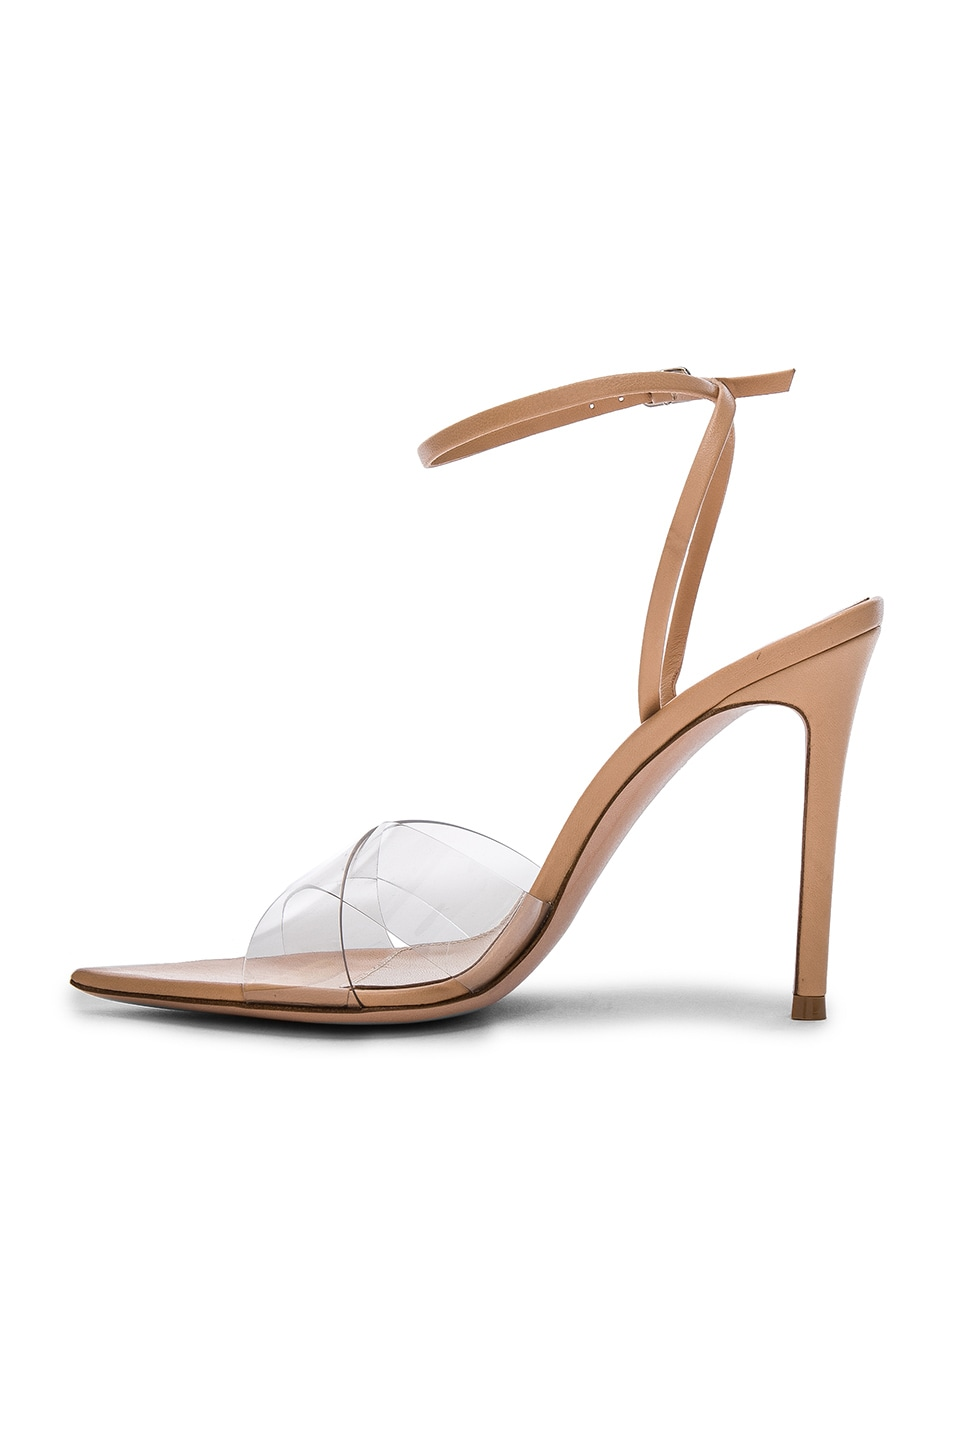 Image 5 of Gianvito Rossi Leather & Plexi Stark Ankle Strap Sandals in Transparent & Nude